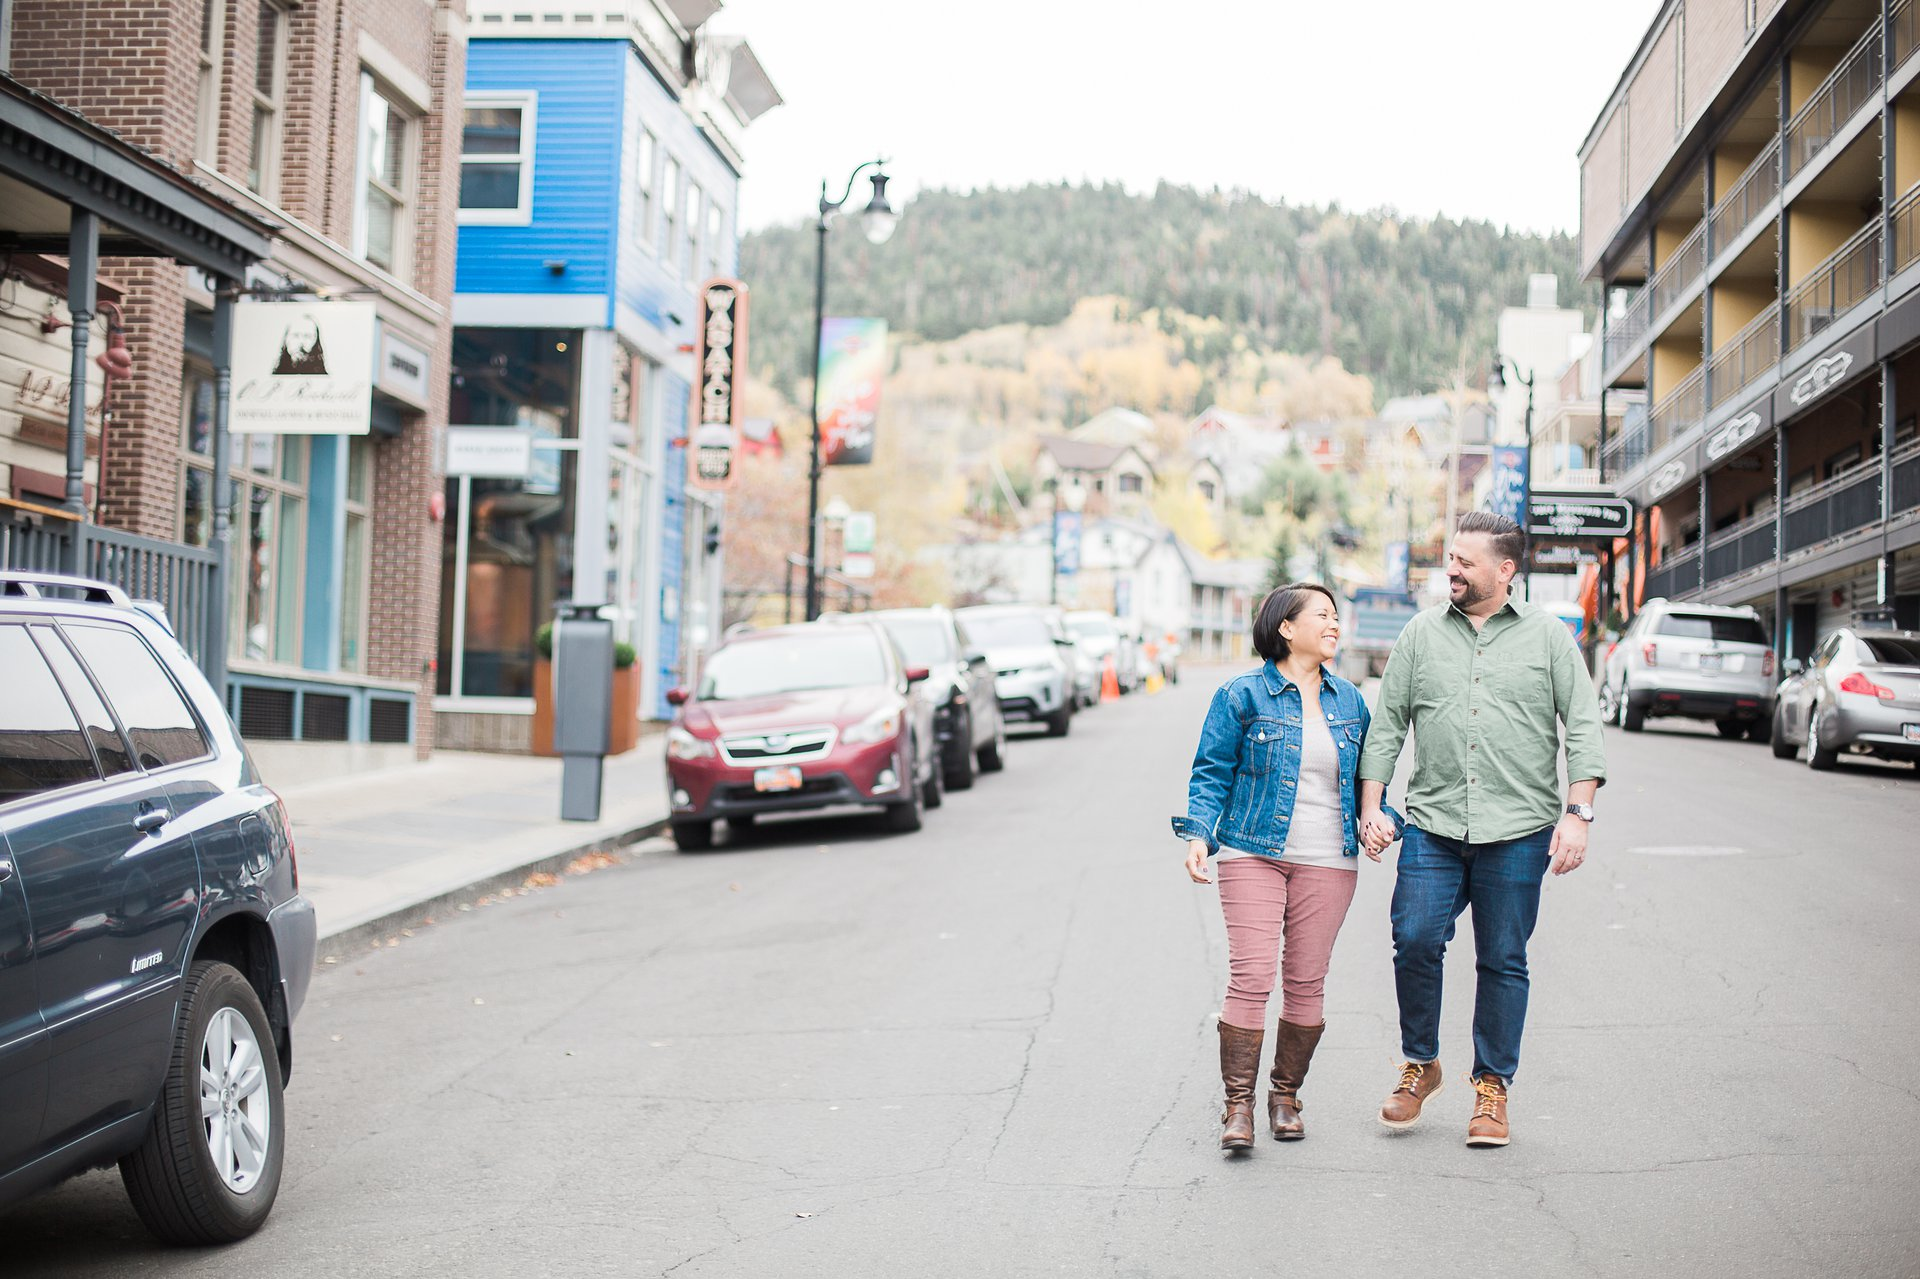 Flytographer Travel Story - Park City Perfect!